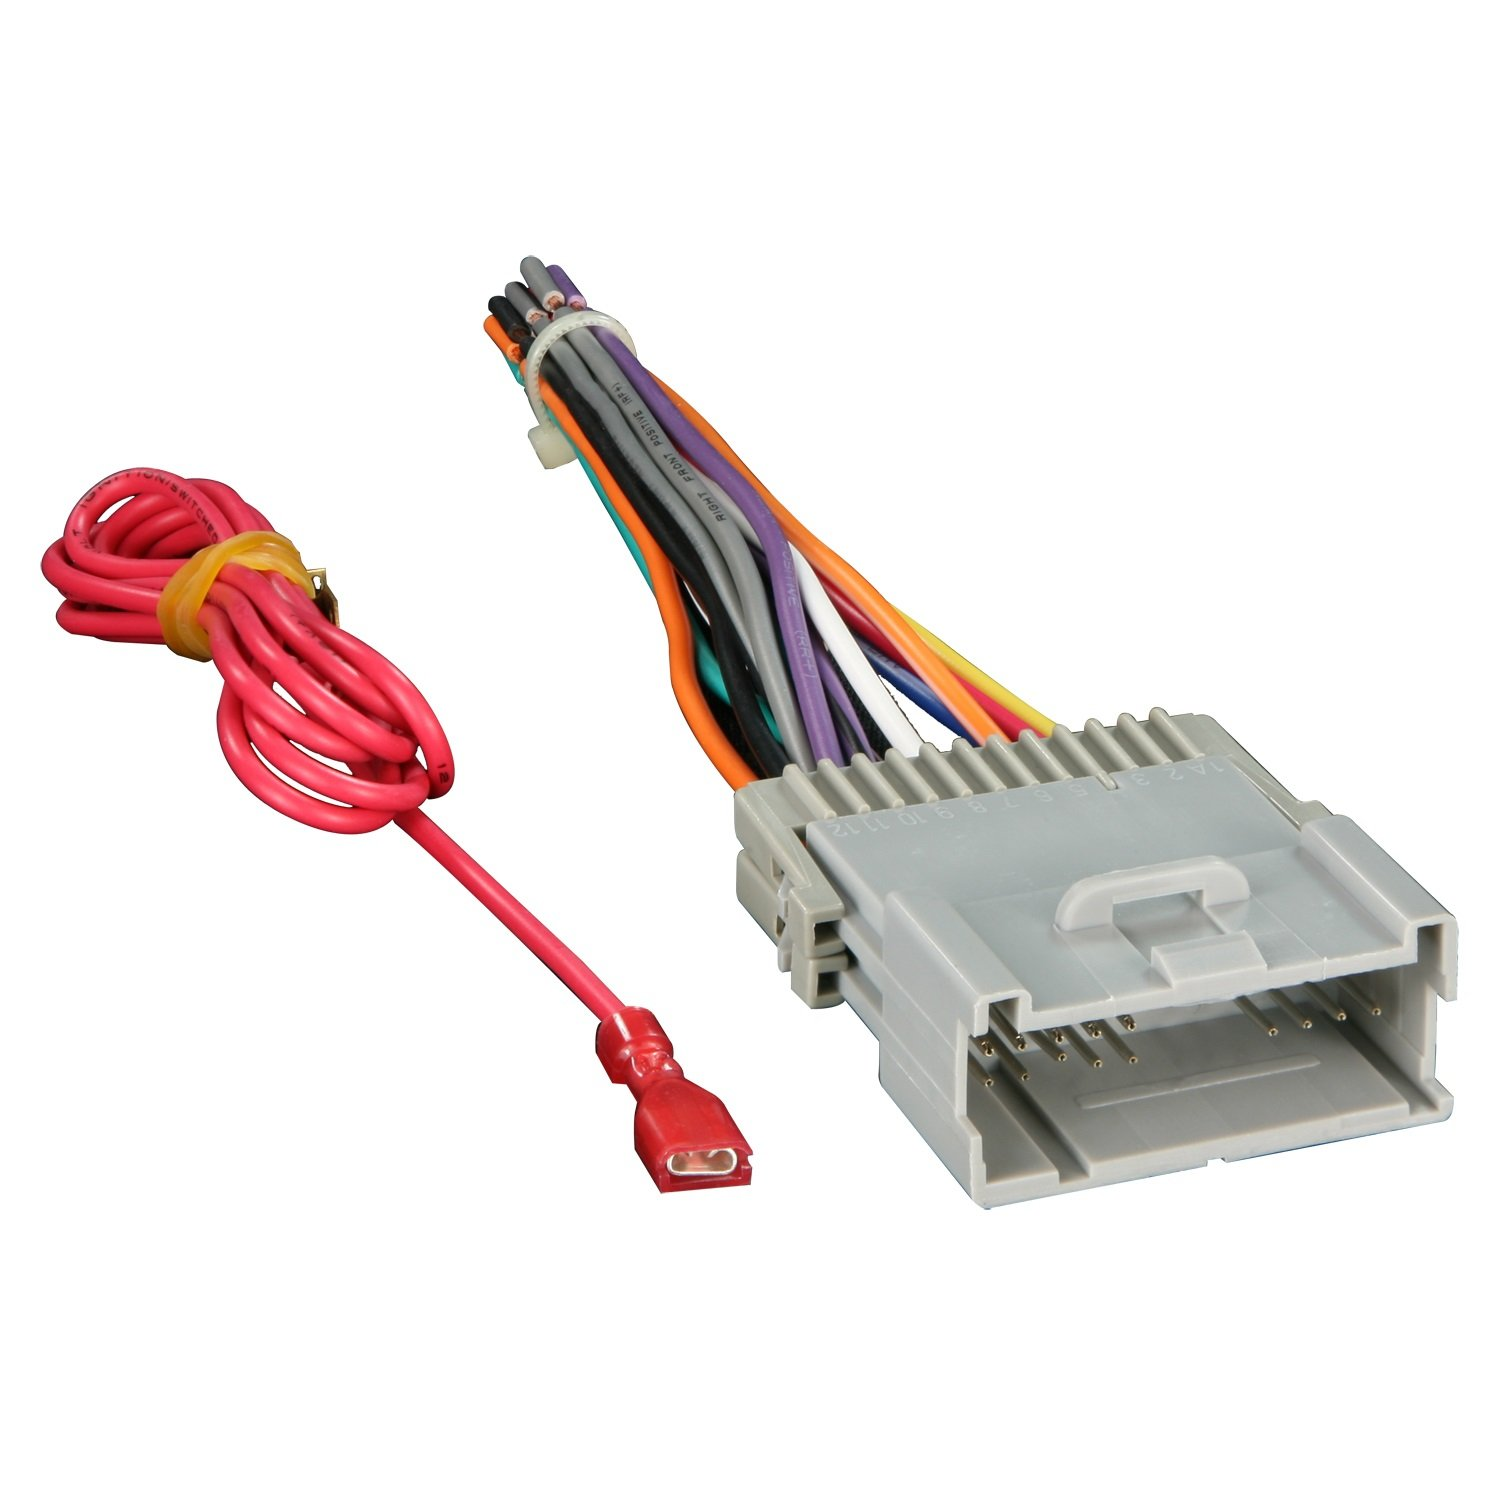 61eewxp9orL._SL1500_ amazon com metra 70 2003 radio wiring harness for gm 98 08 jvc car stereo wiring harness adapter at crackthecode.co